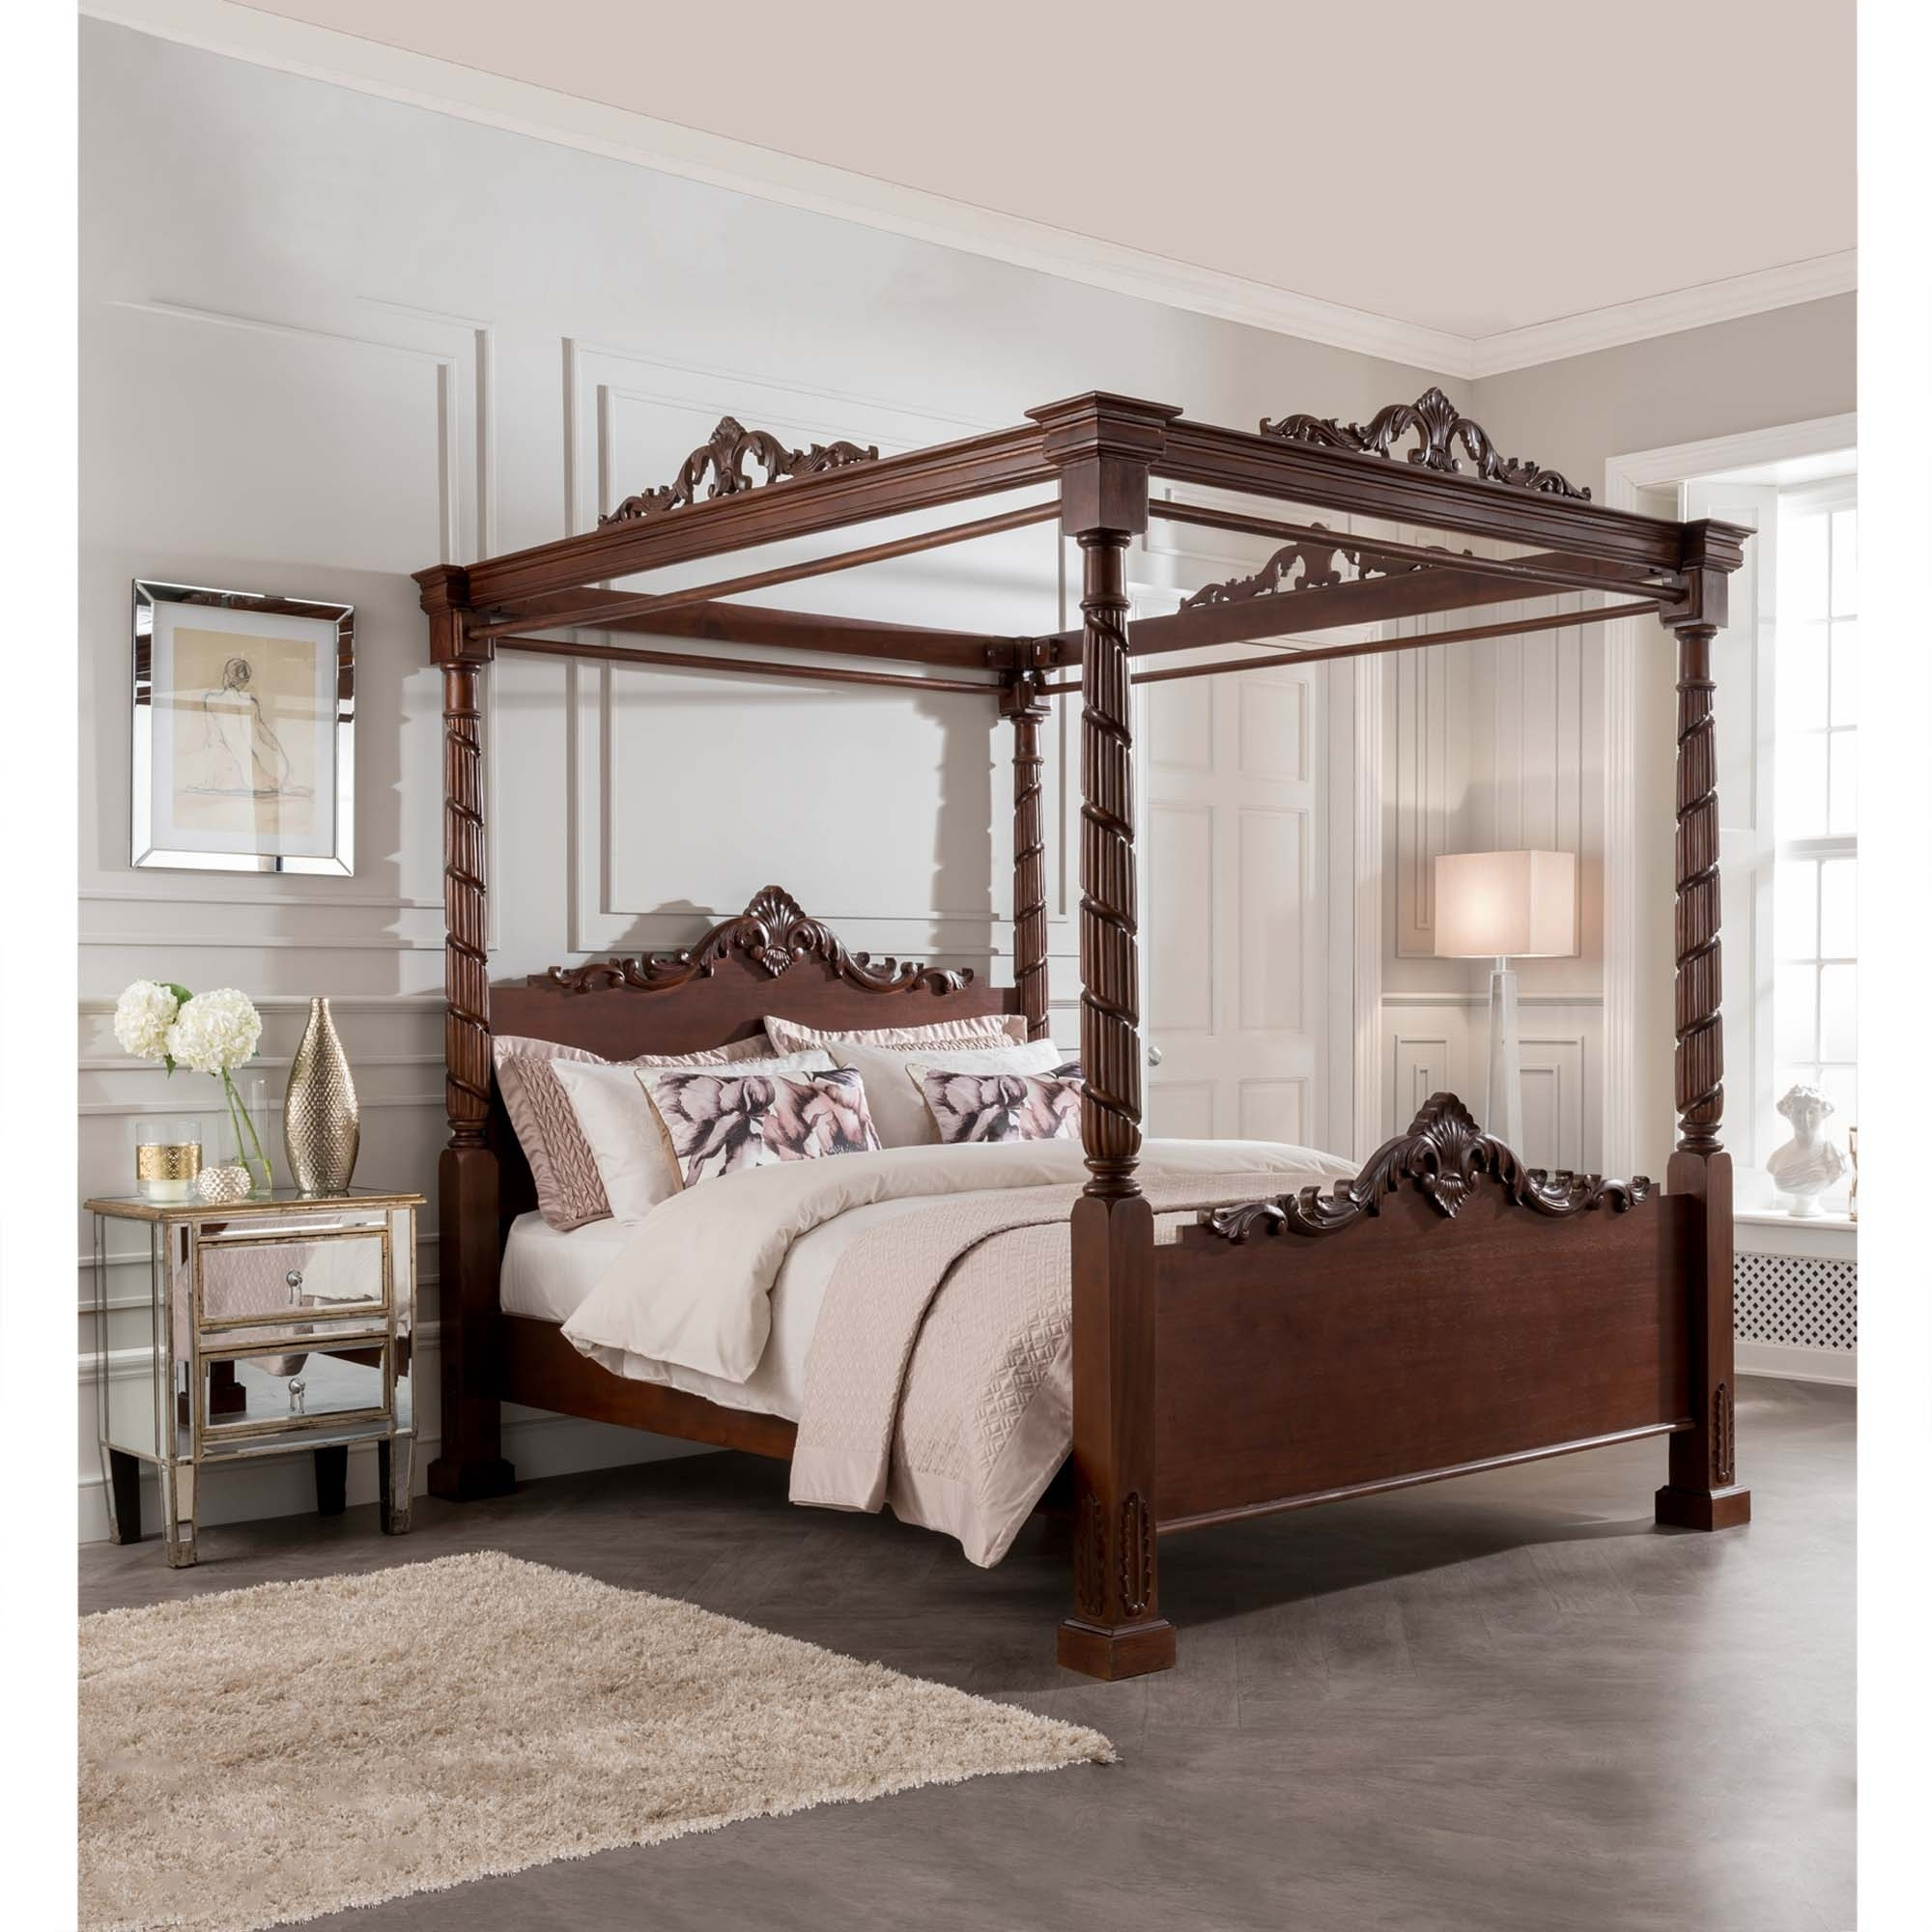 Four Poster Bed Uk Part - 35: Lincoln Four Poster Antique French Style Bed